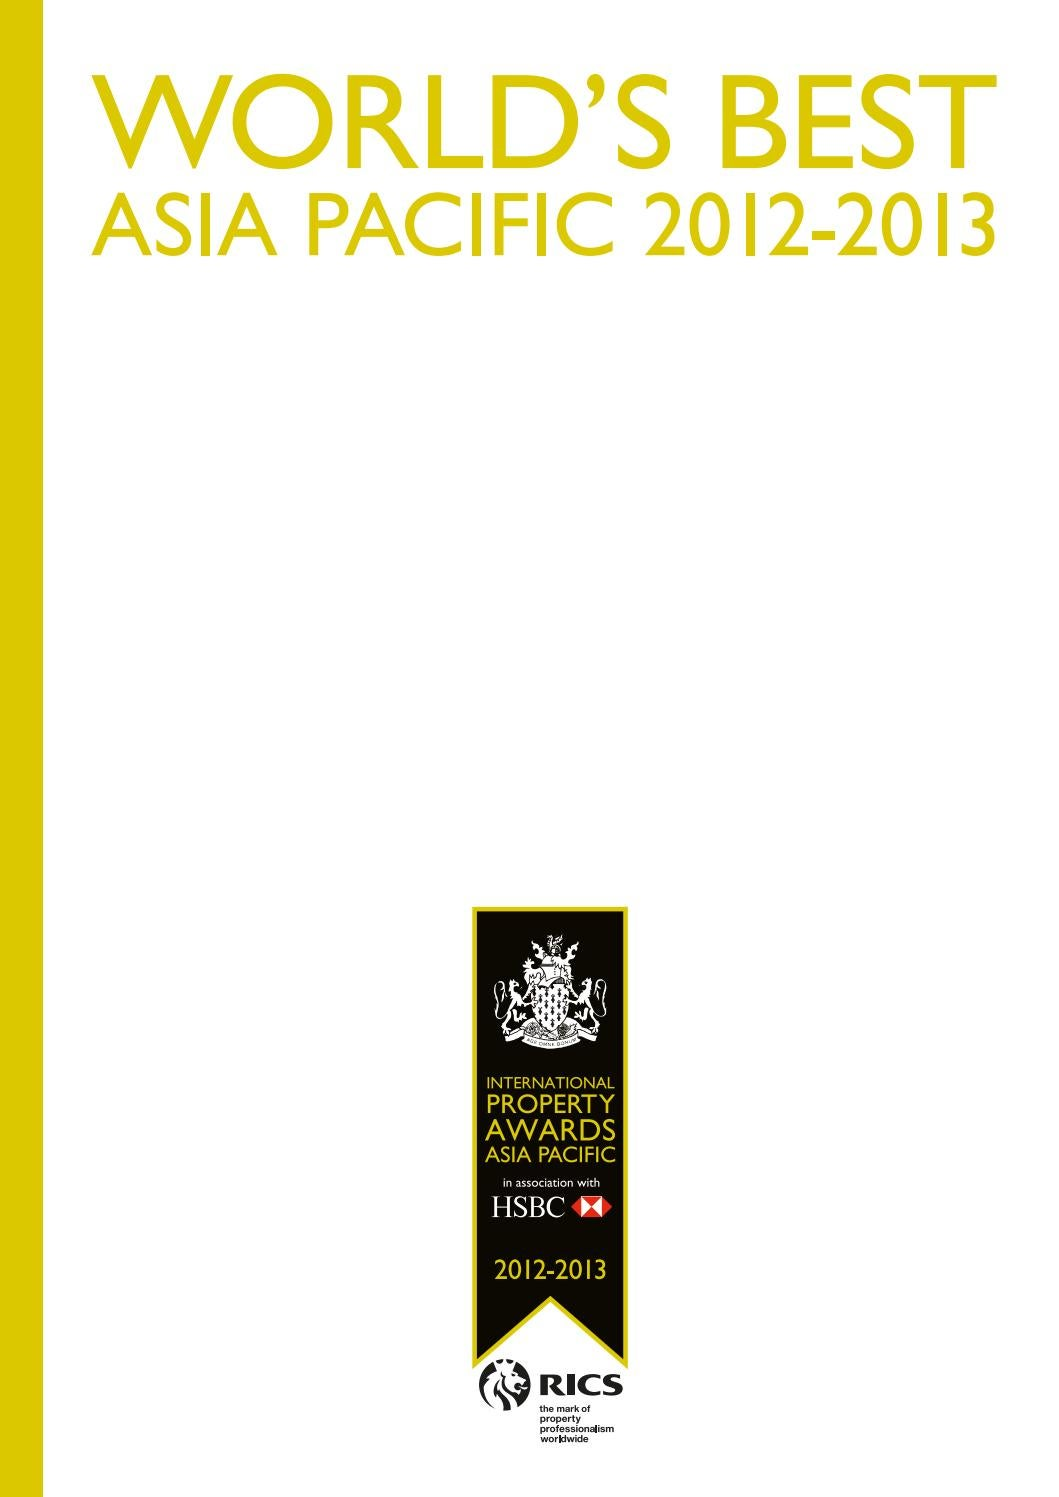 Asia Pacific's Best 2012-2013 by International Property